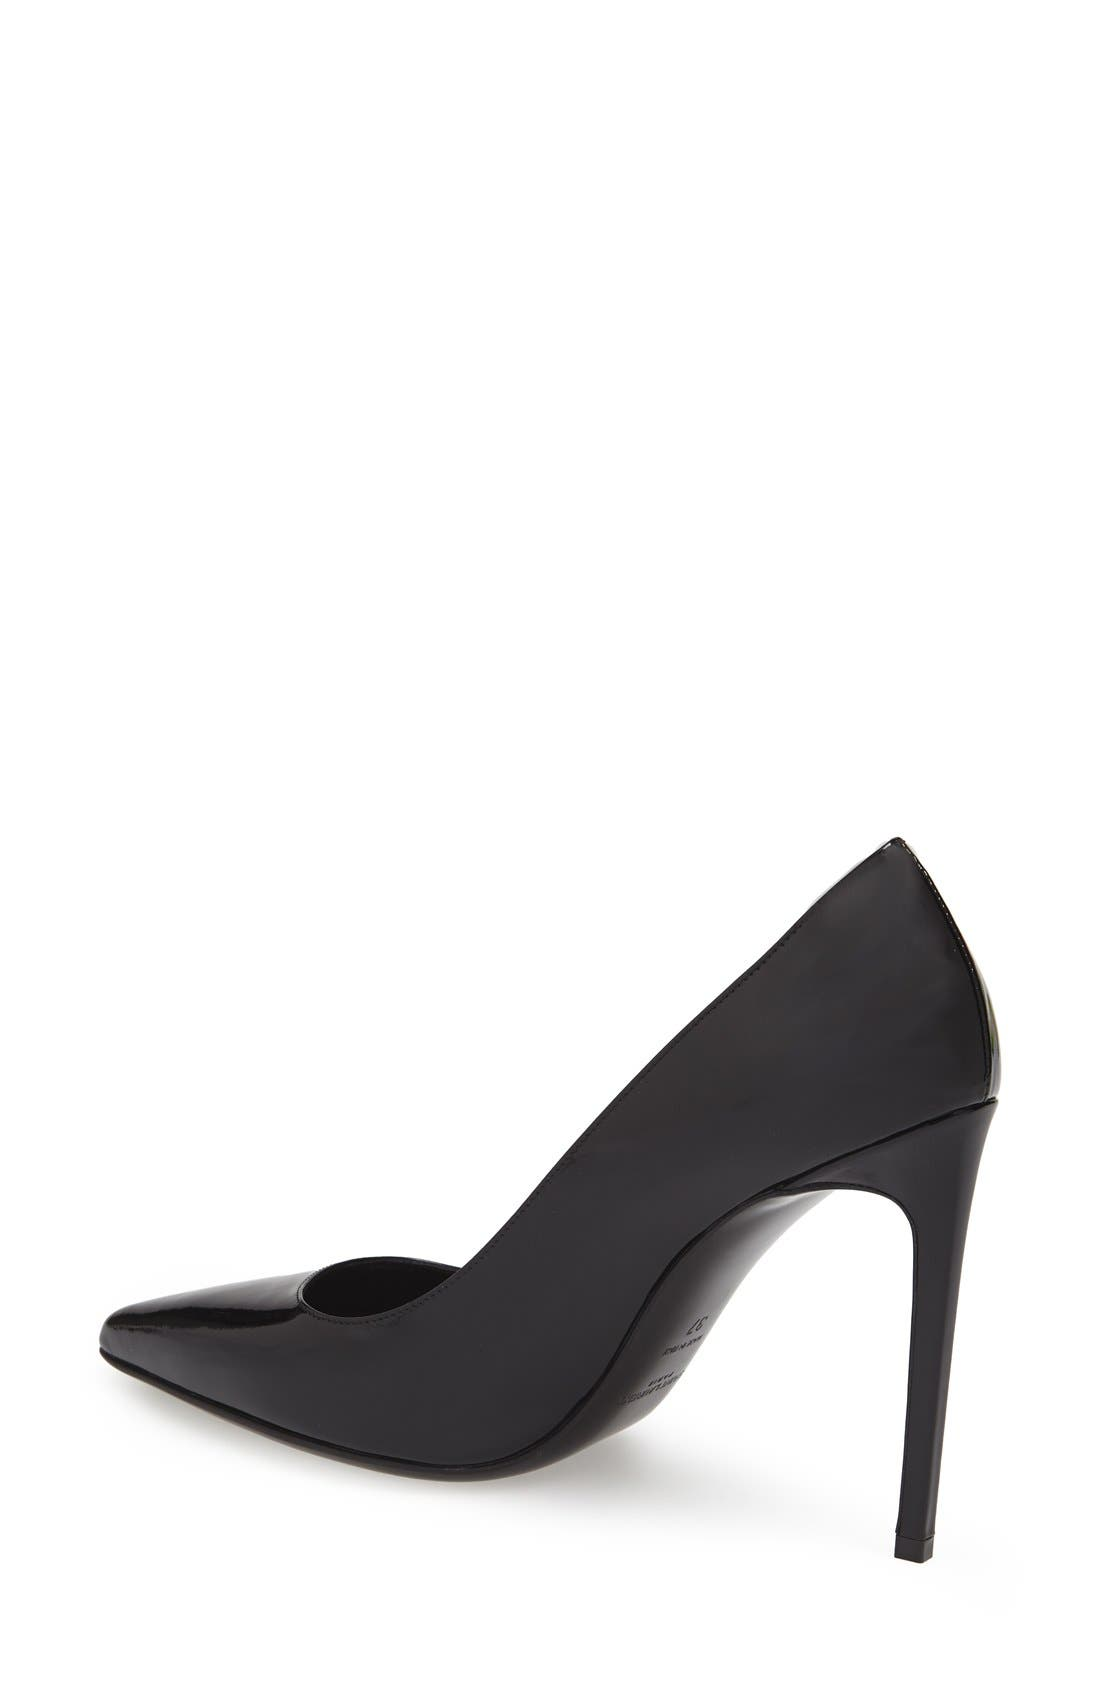 'Paris Skinny' Pointy Toe Pump,                             Alternate thumbnail 2, color,                             Black